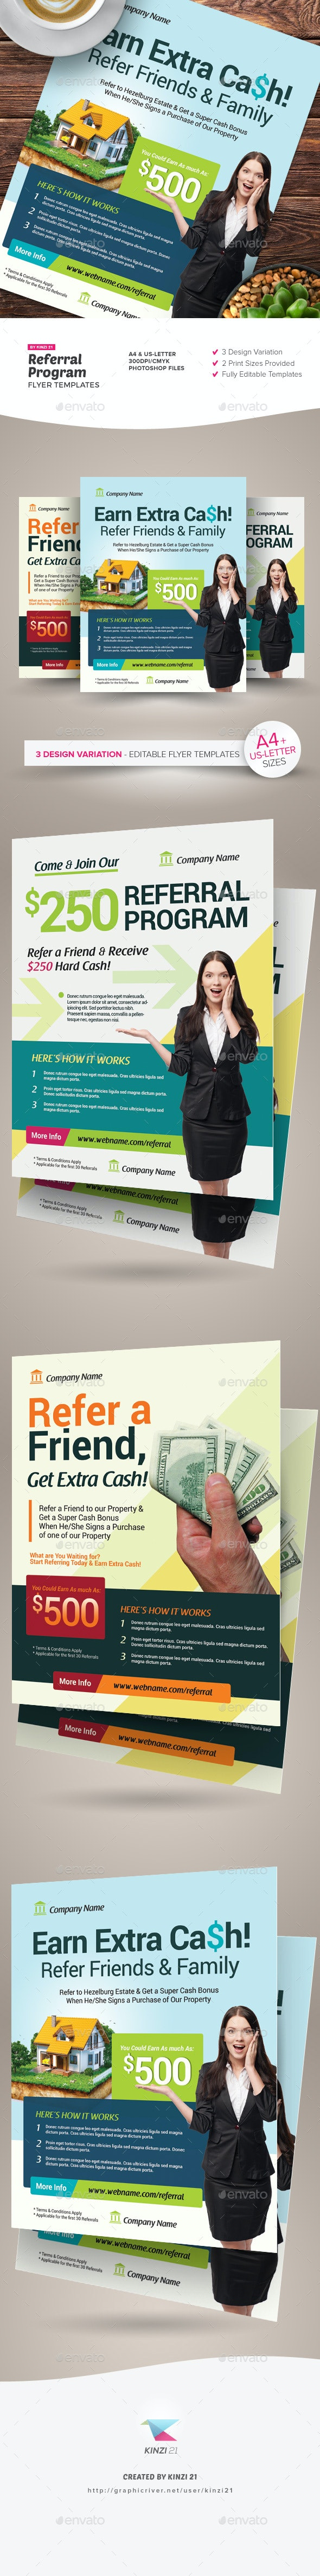 Referral Program Flyer Templates - Corporate Flyers